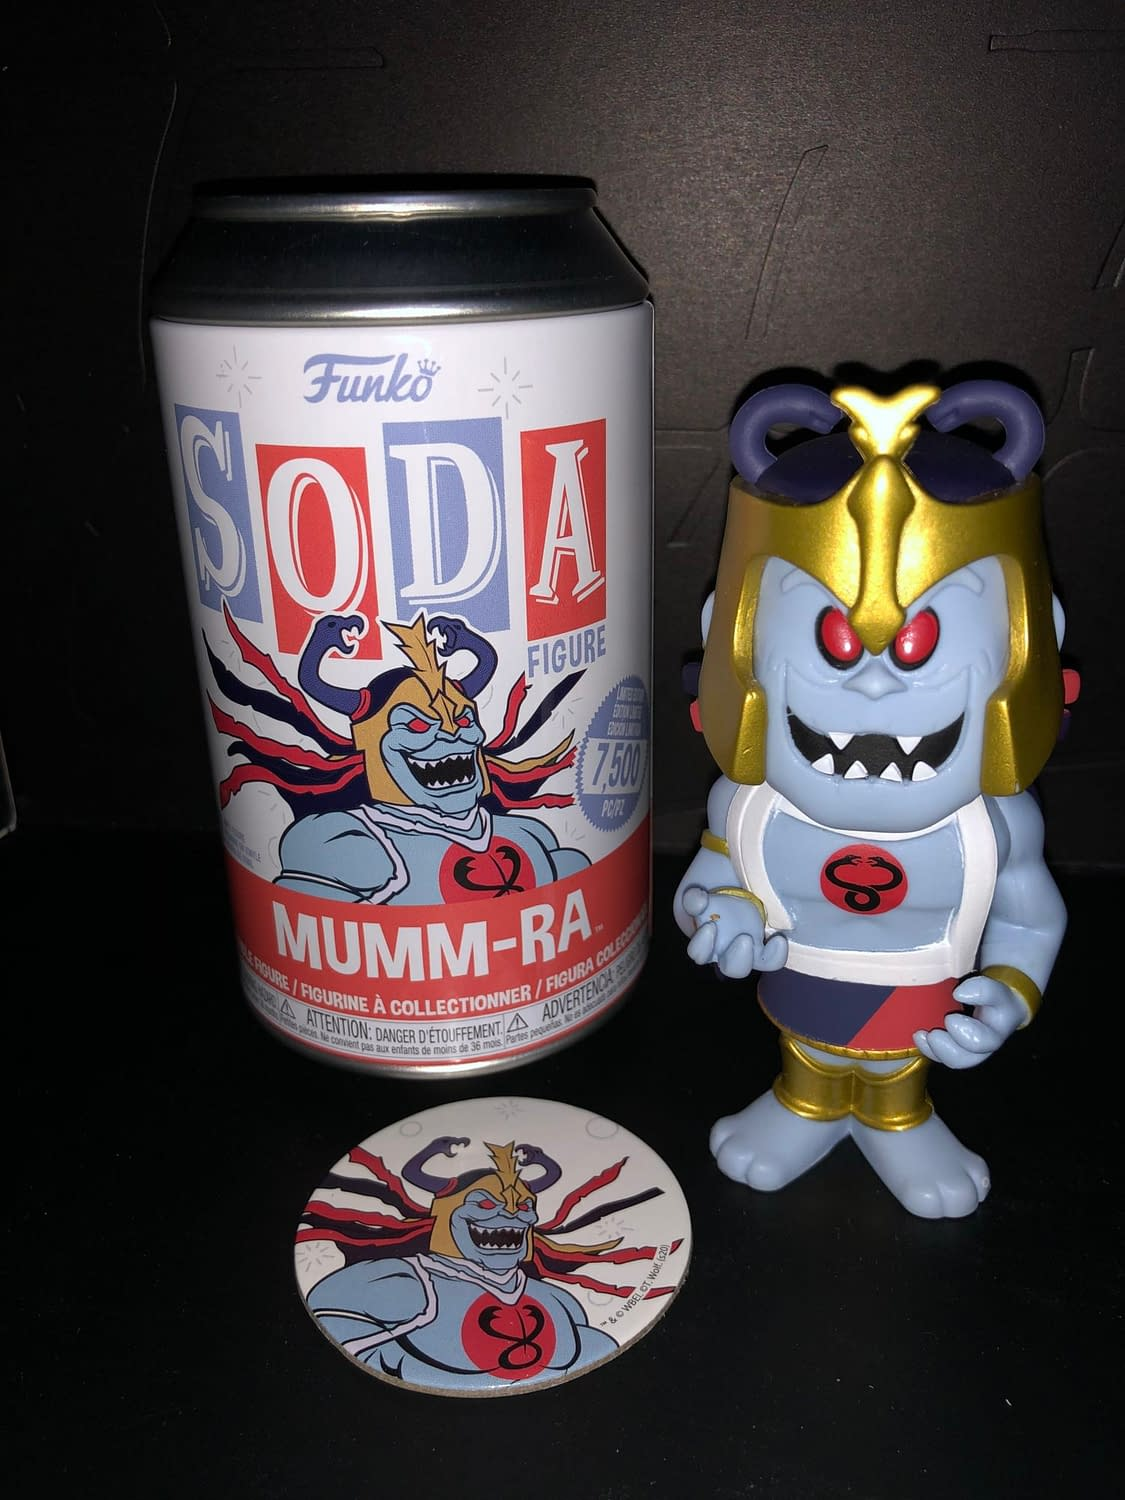 Funko Soda Vinyl Figure Thundercats Mumm-Ra Figure and can front view.